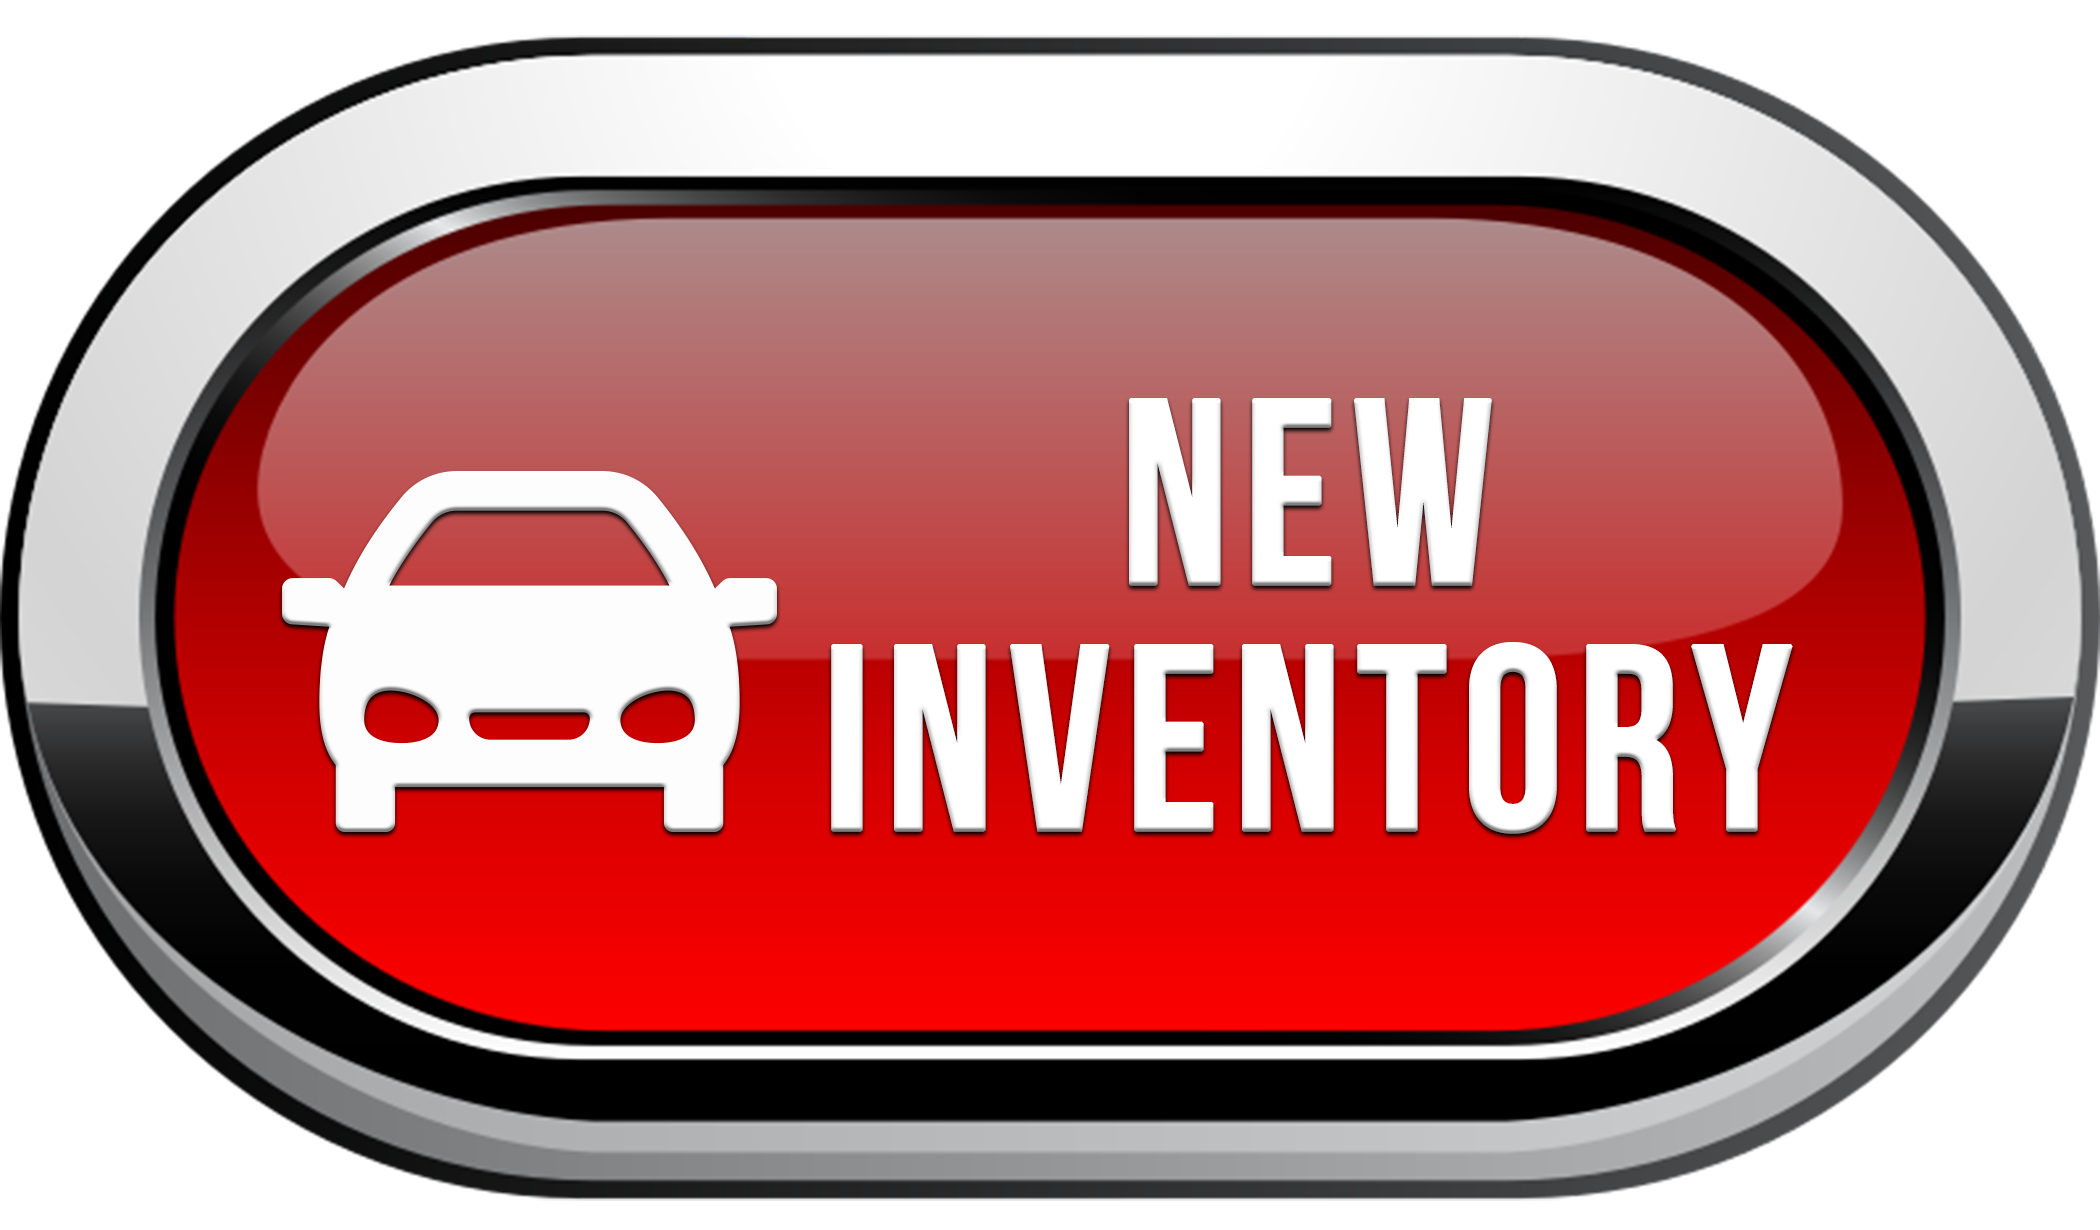 Cars For Sale In Louisville Ky >> Old inventary clipart - Clipground